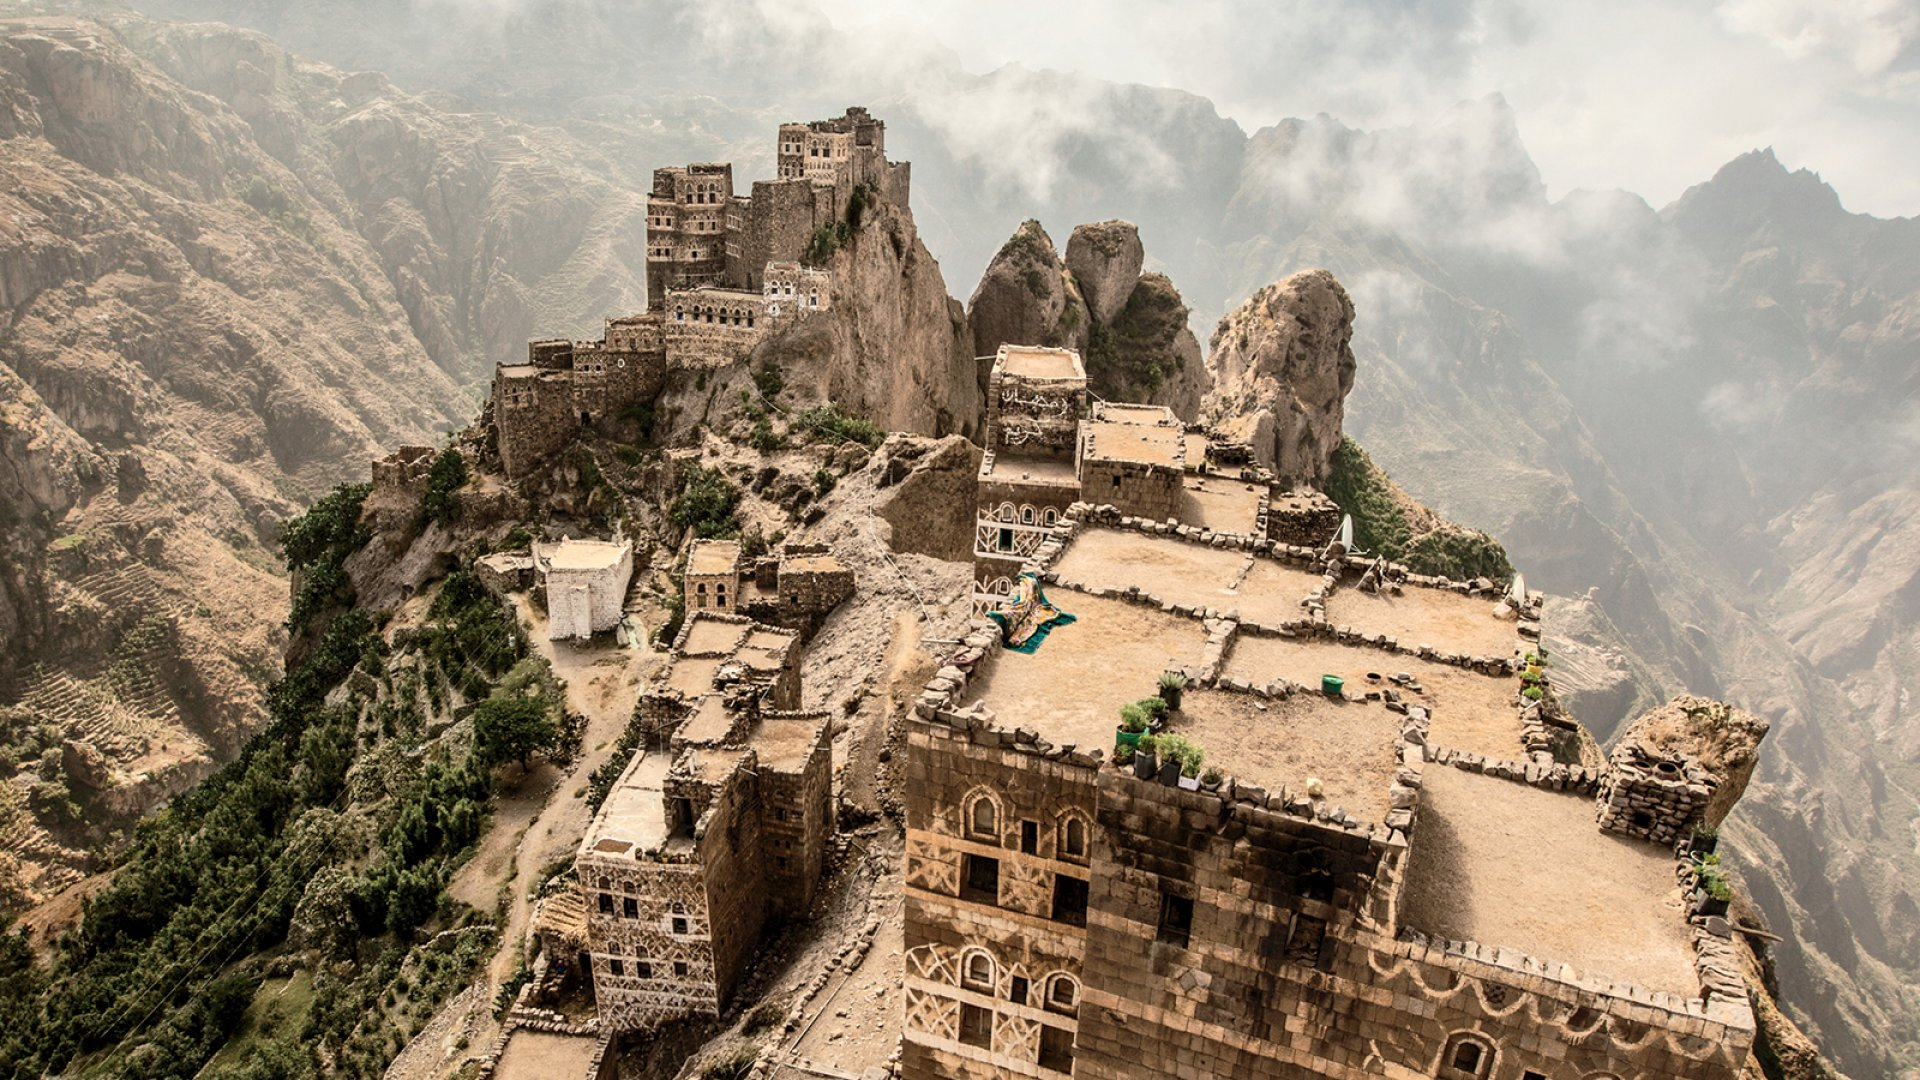 The mountain village of Al Hajjarah, southwest of San'a, Yemen. Port of Mokha founder Mokhtar Alkhanshali traveled throughout Yemen trying to find reliable sources of high-quality coffee beans that he could import to the United States. Then war broke out.